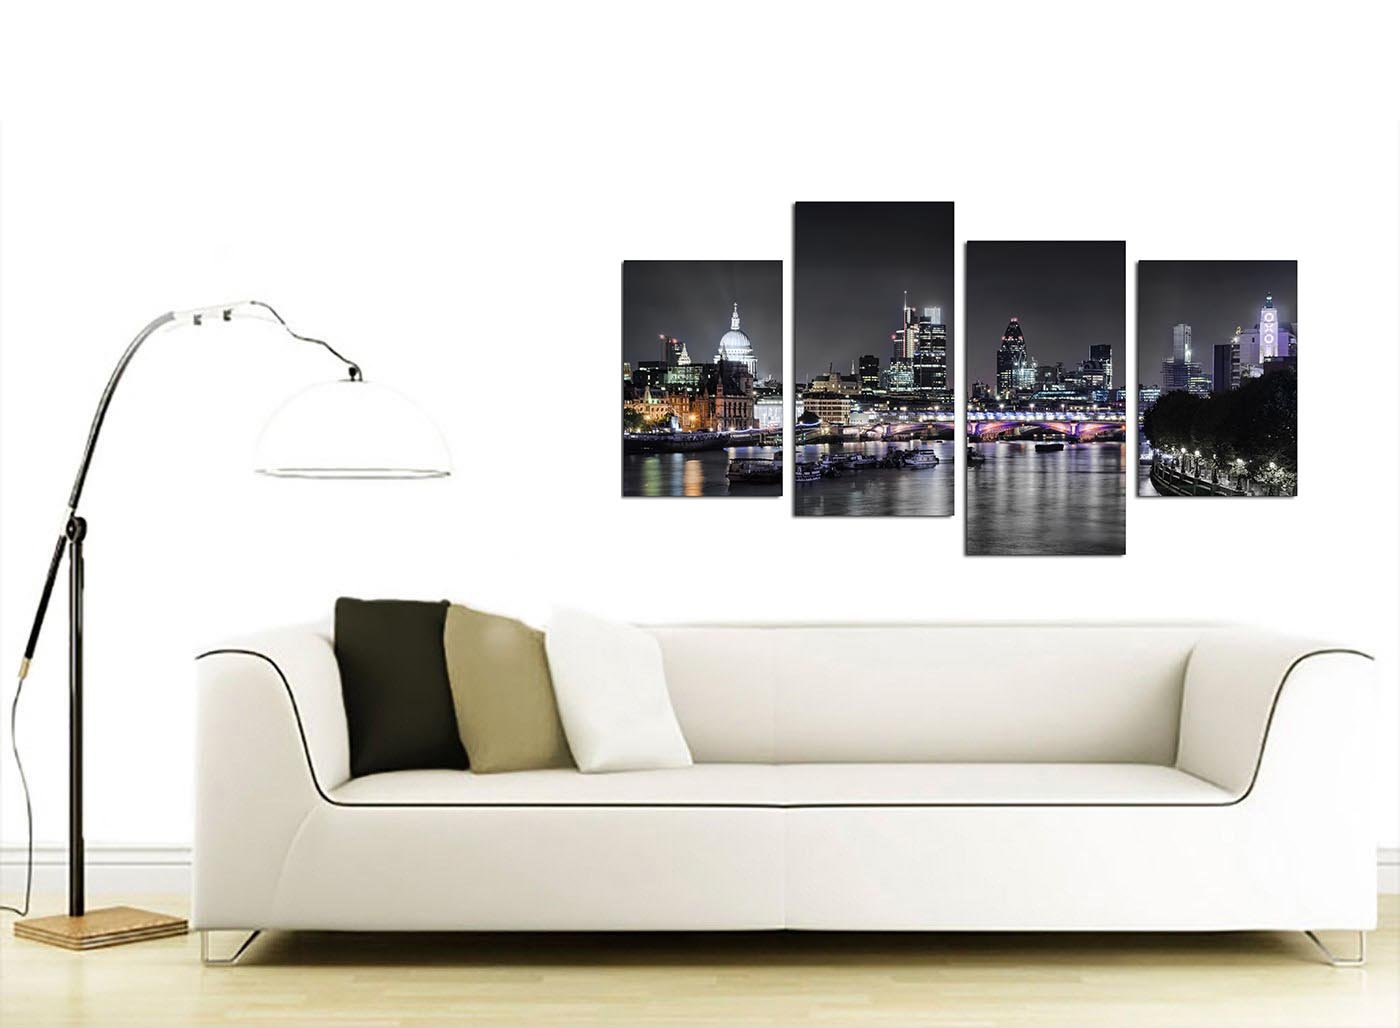 Canvas Wall Art of London Skyline for your Living Room - 4 Panel -  Pictures: Amazon.co.uk: Kitchen & Home